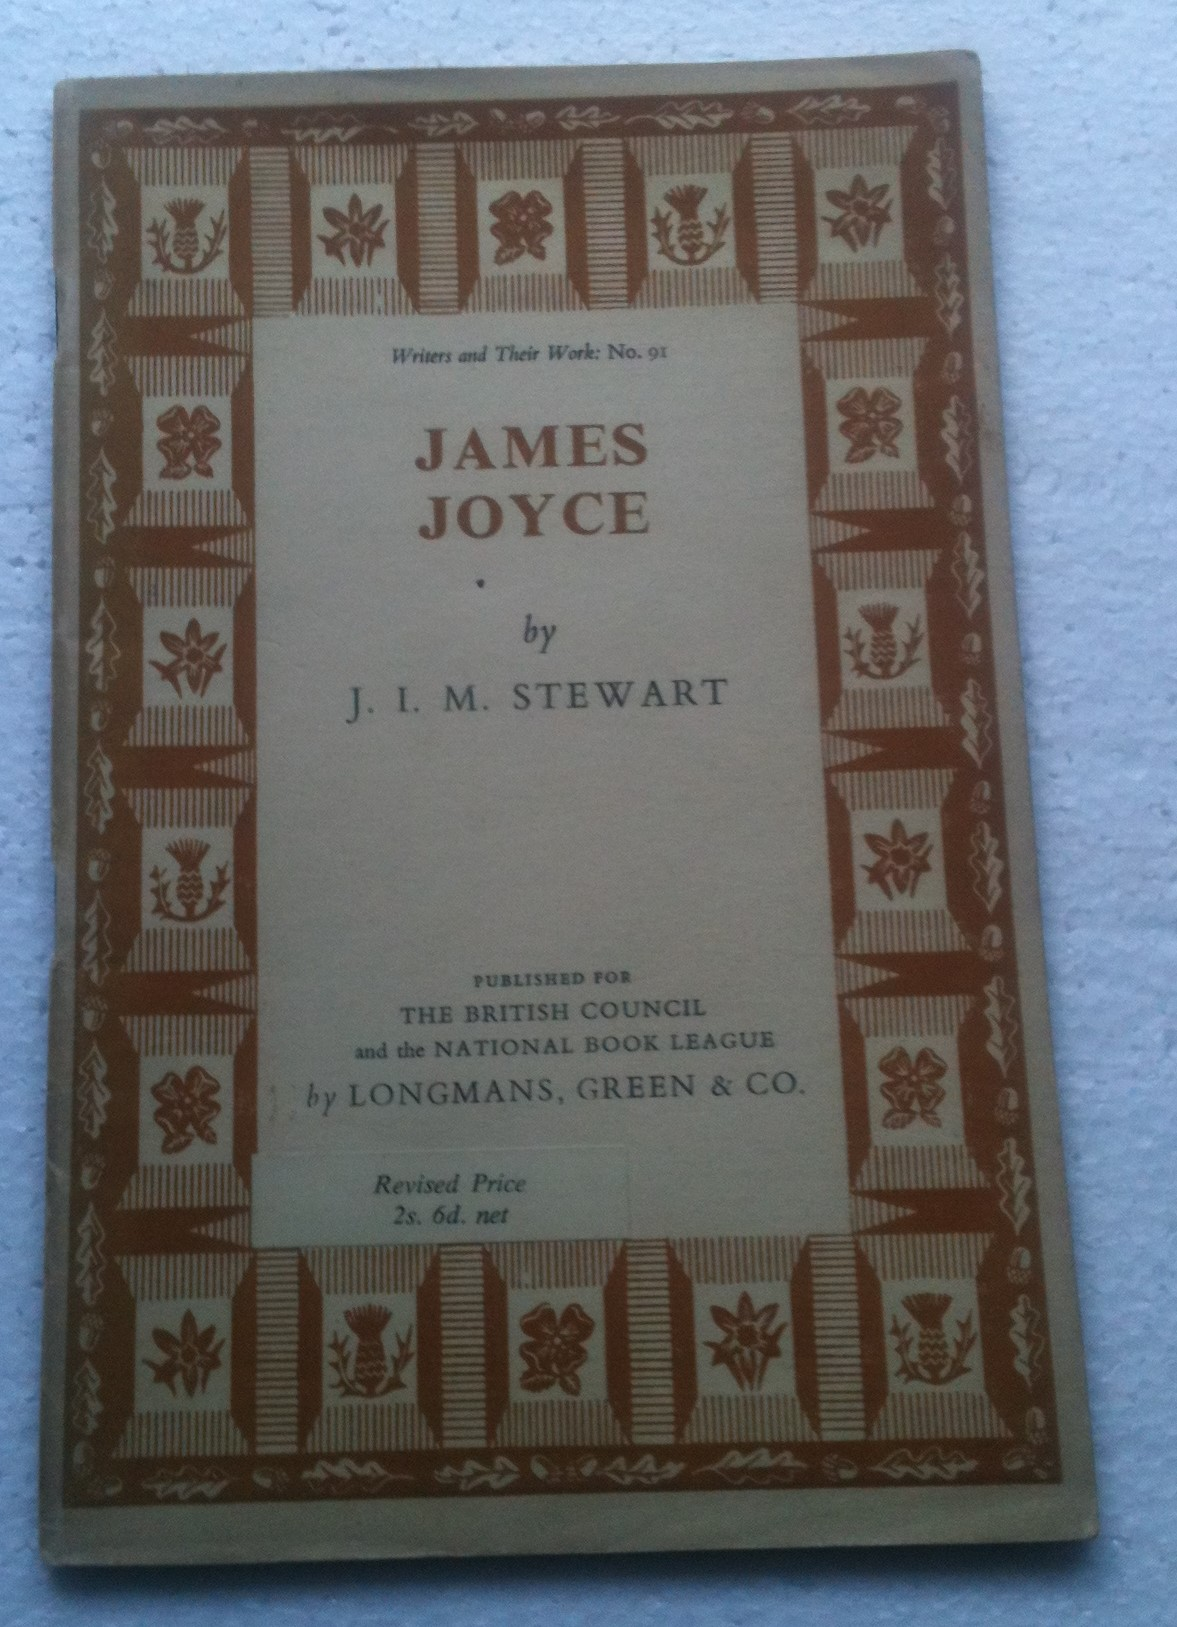 Image for James Joyce By J I M Stewart Writers and Their Works No 91